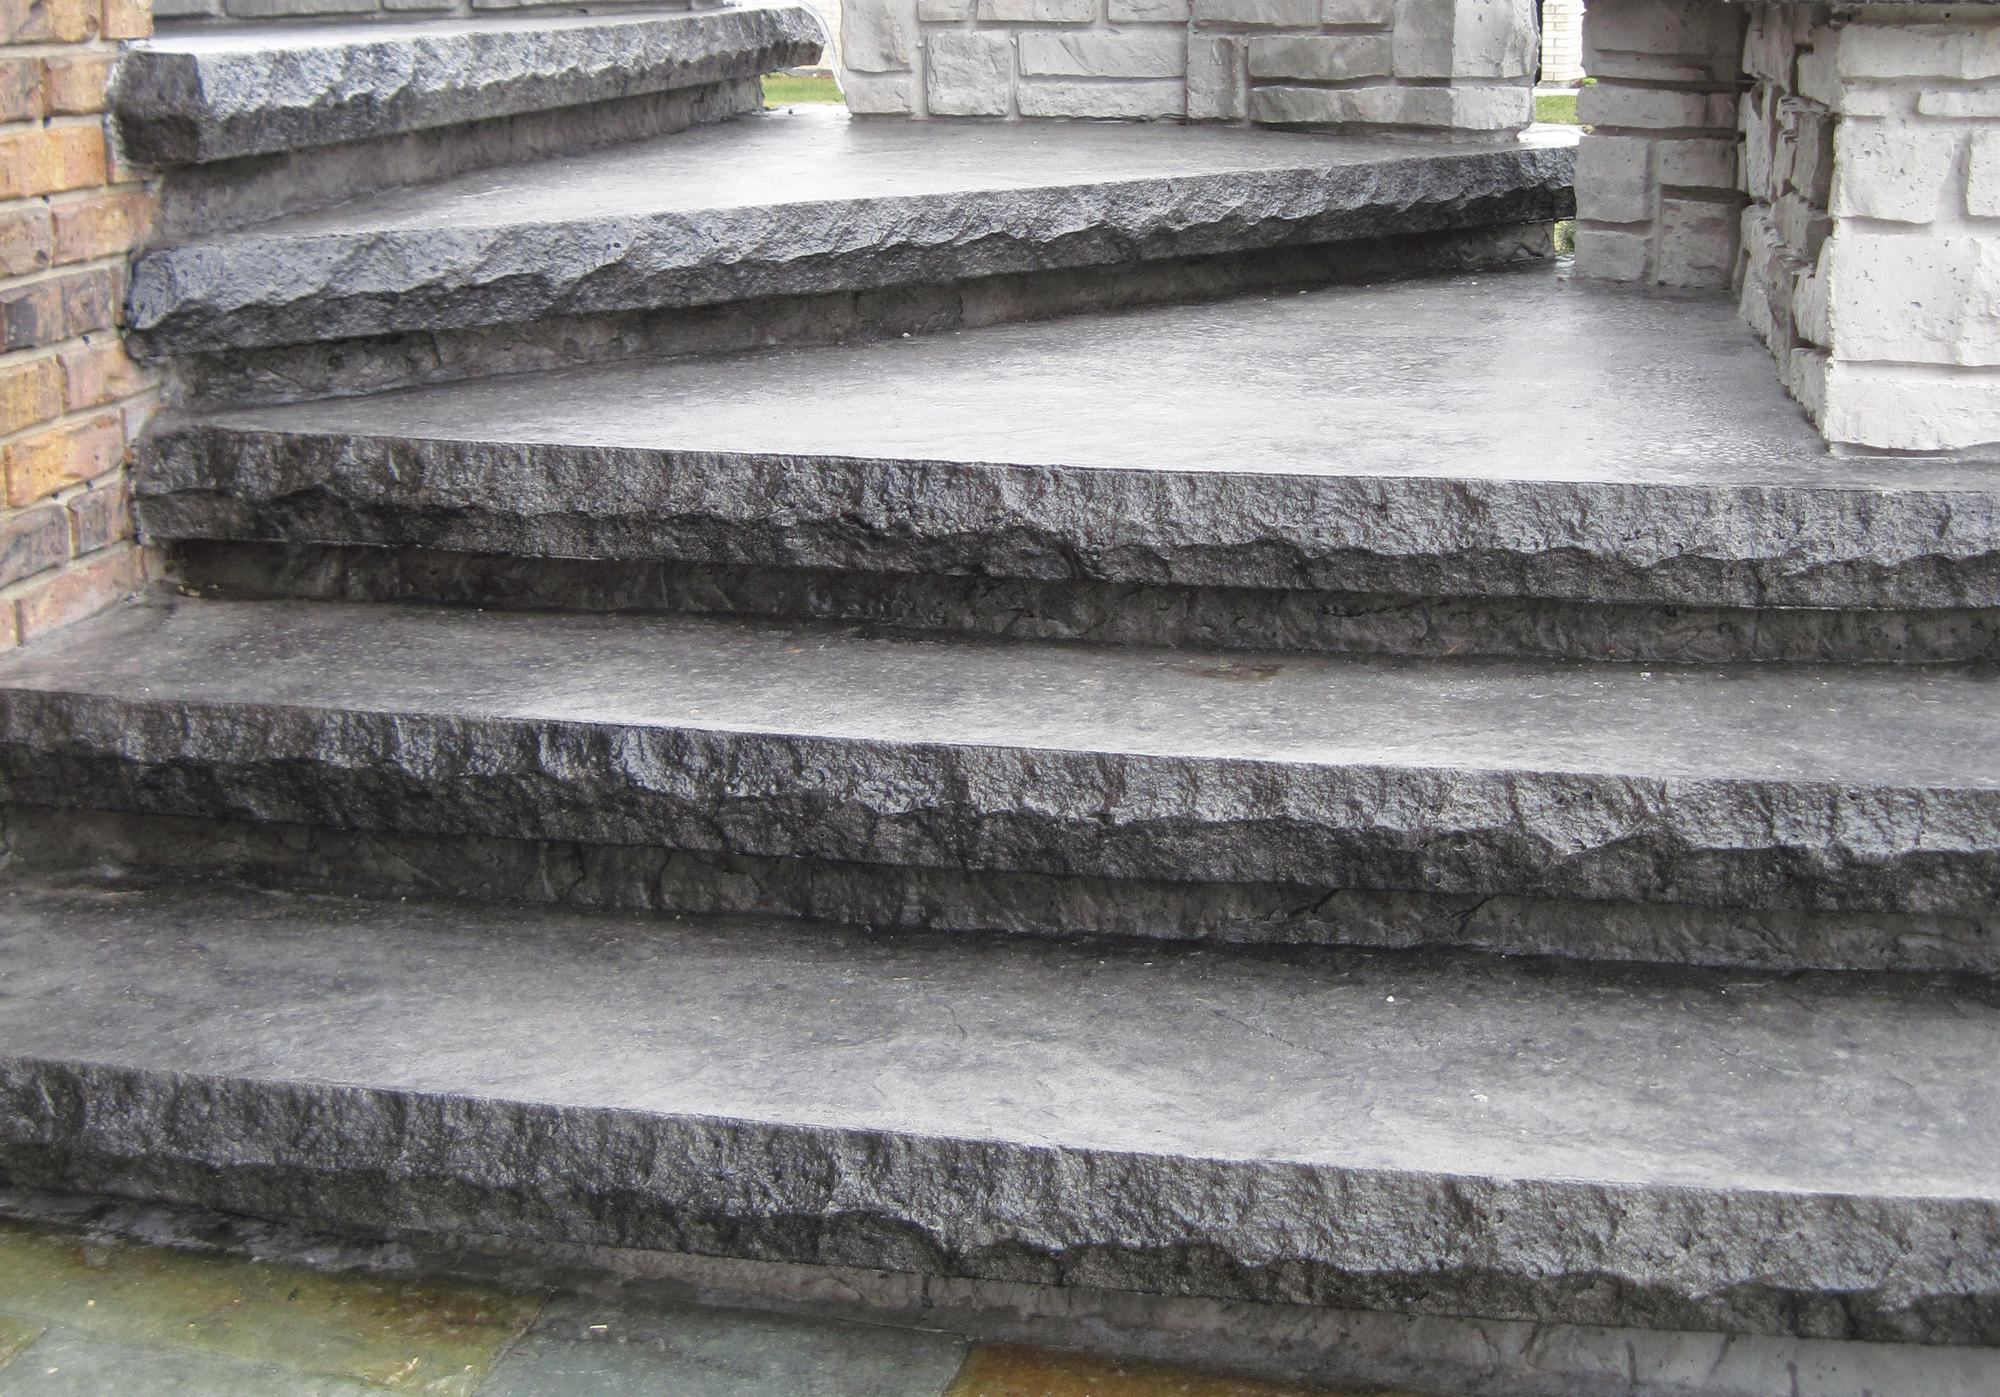 Creating Concrete Stairs| Concrete Construction Magazine | Concrete  Surfaces, Decorative Concrete, Overlays And Toppings, World Of Concrete